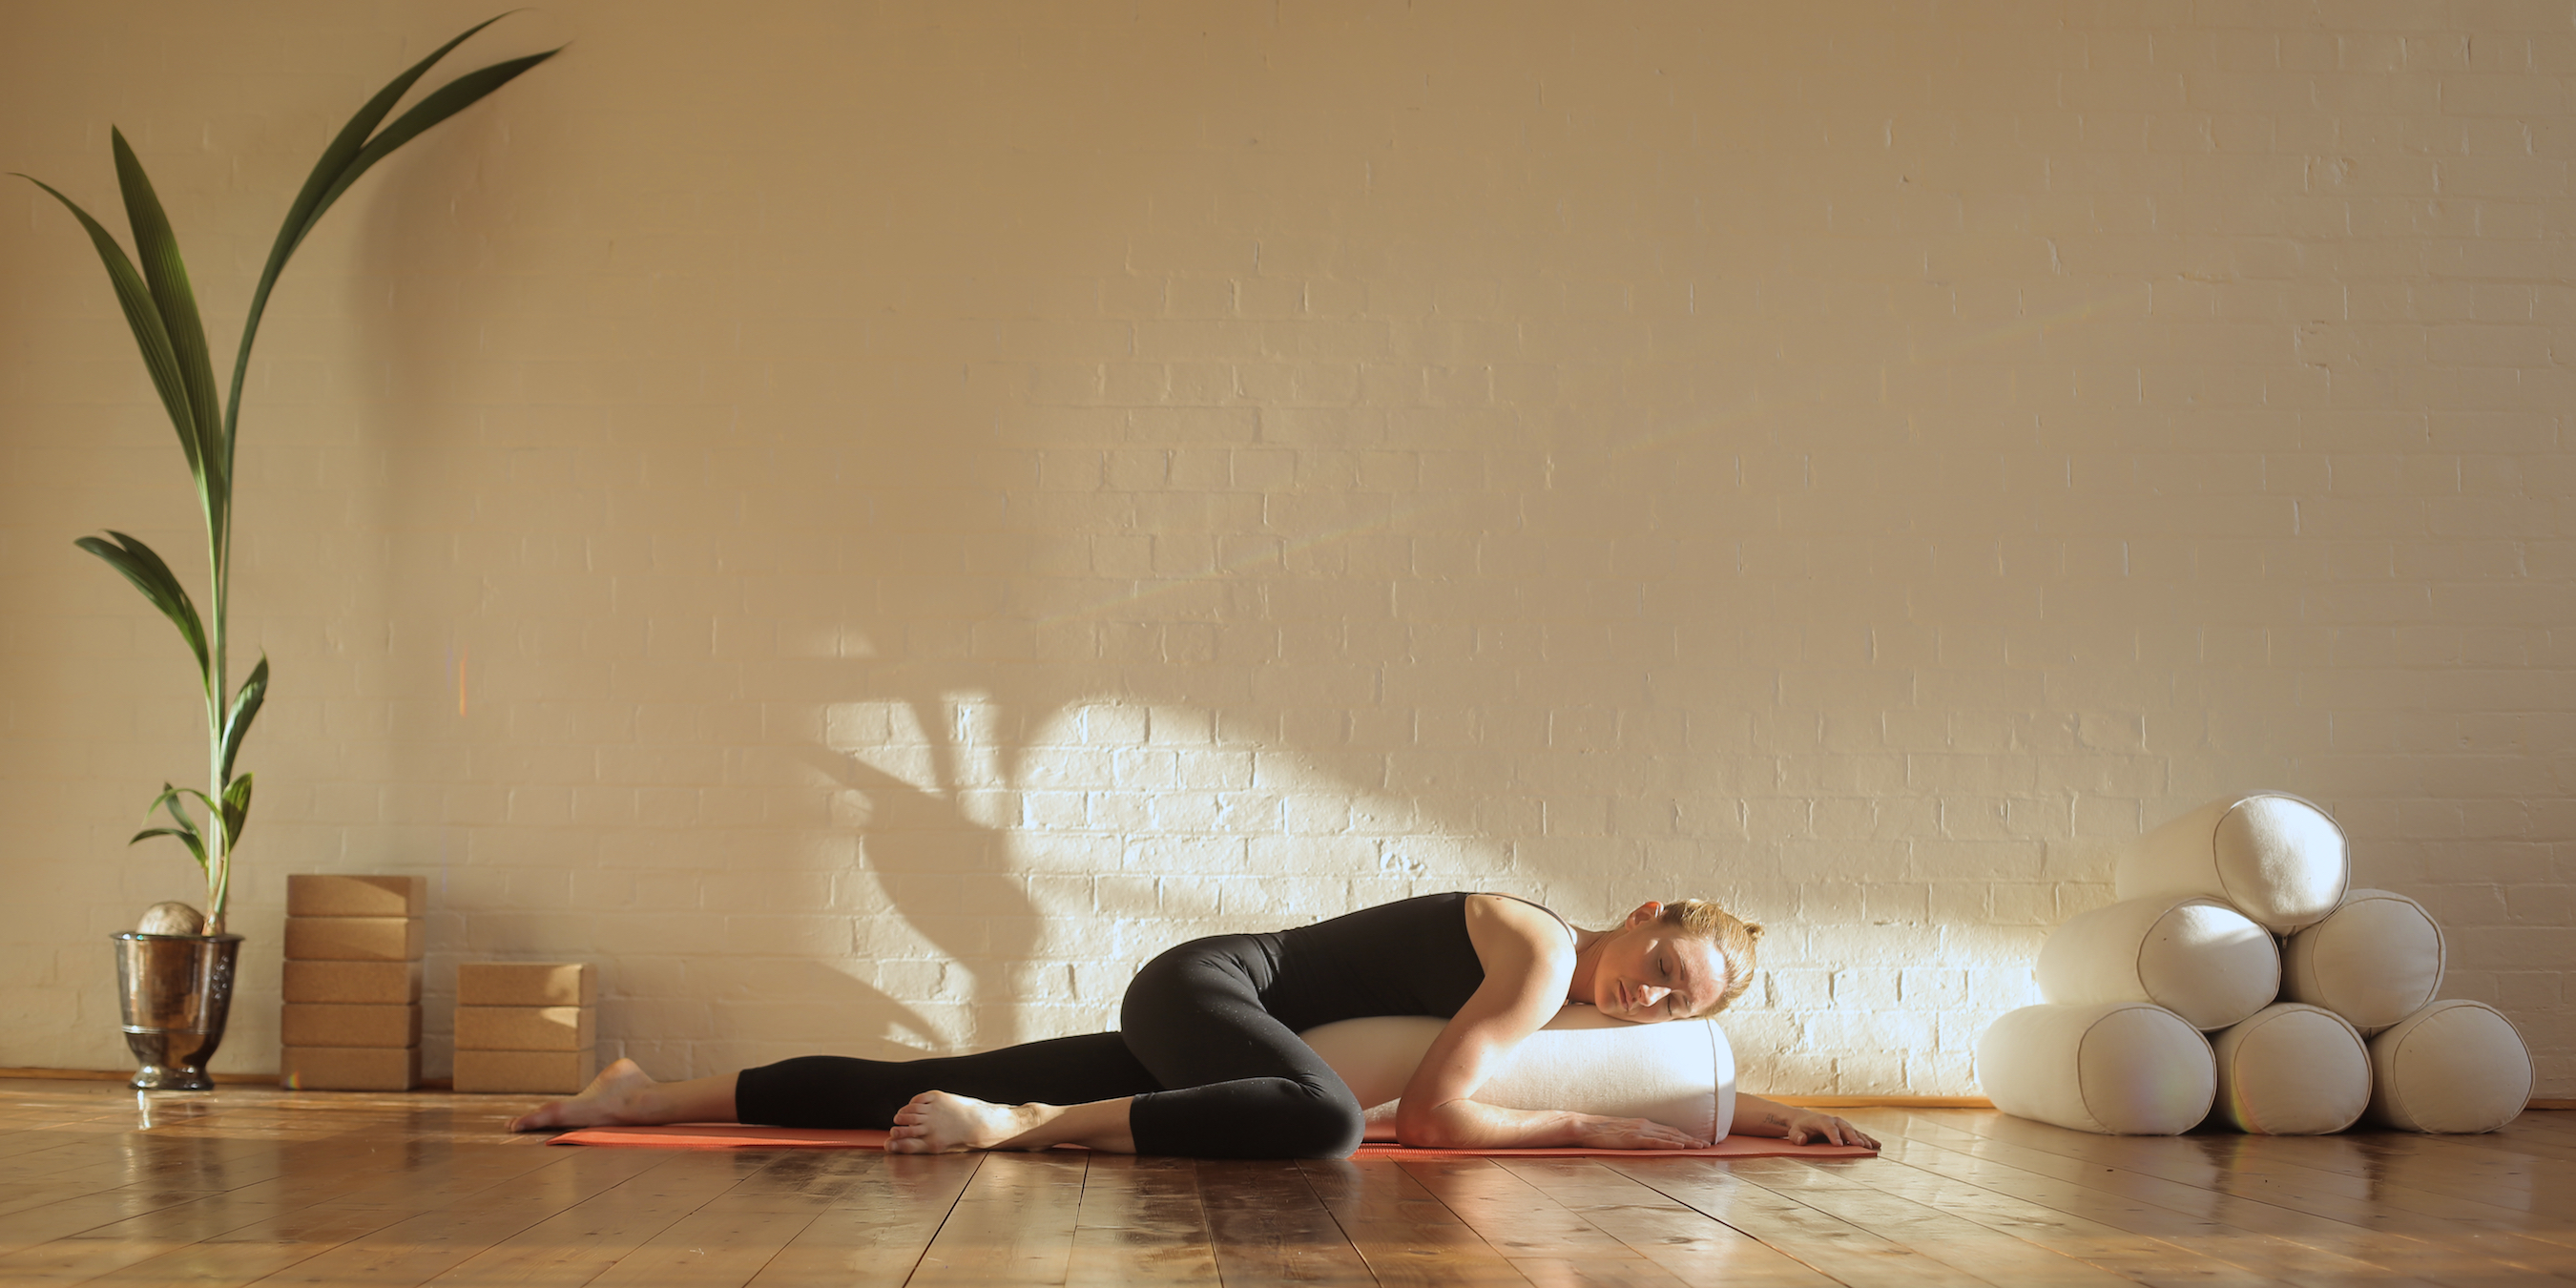 yin yoga benefits and history